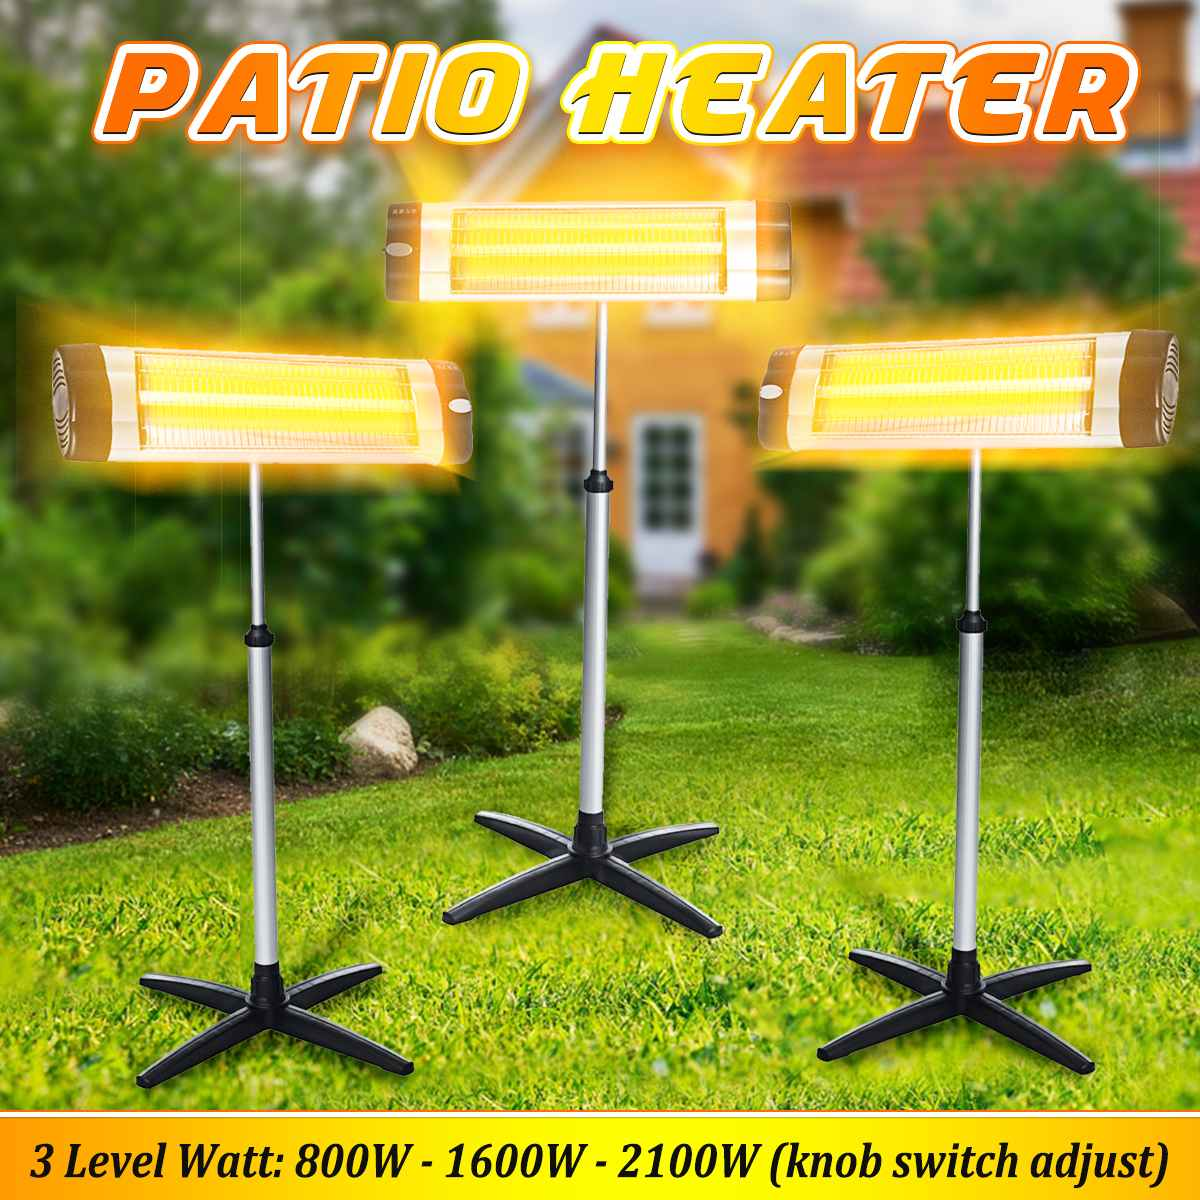 Multifunction 3 Level Patio Heater Adjustable Air Heater Aluminum Waterproof Courtyard Electric Heating For Deck Pool Area 220V